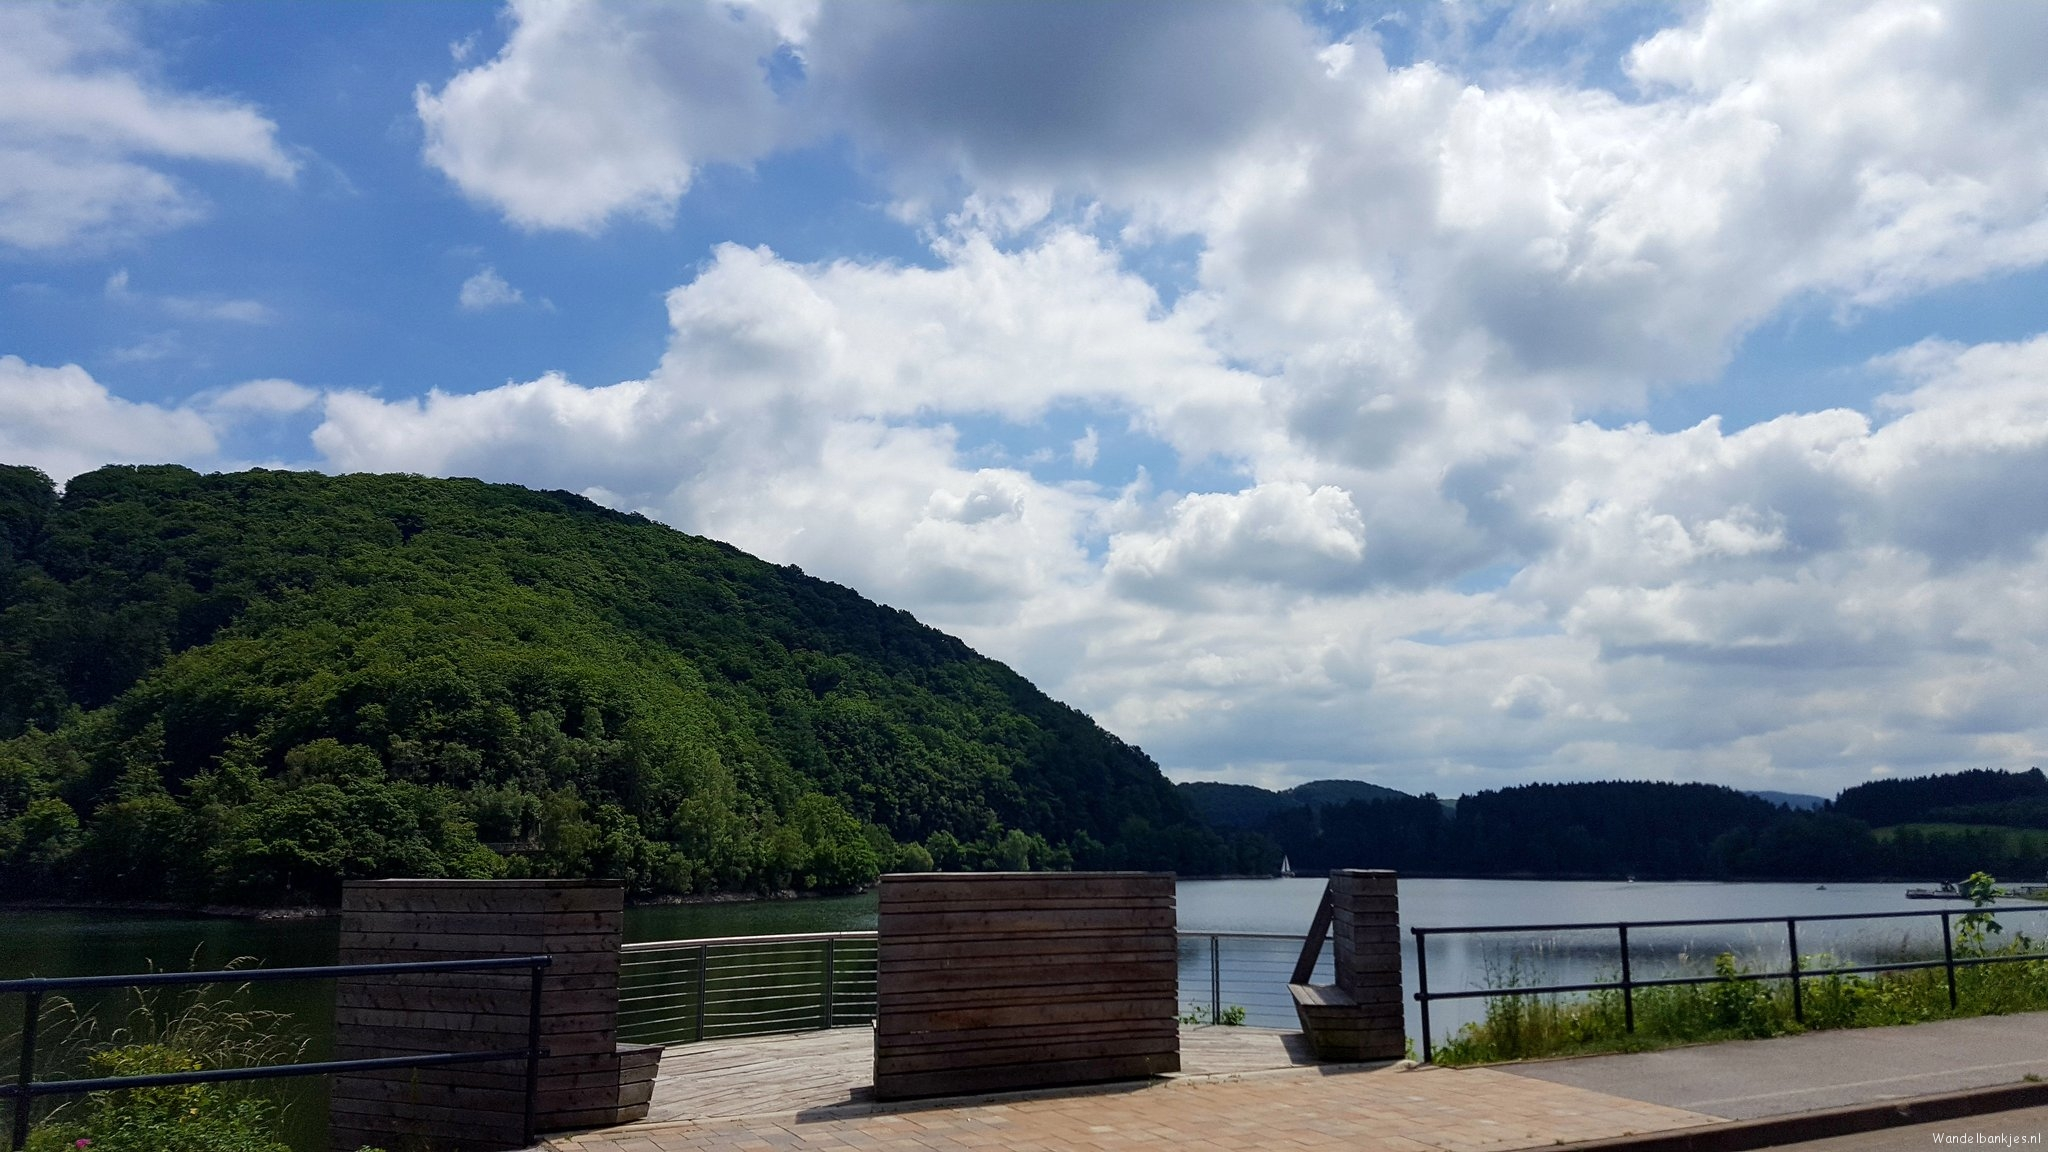 rt-wolf-walking-plan-diemelsee-sauerland-walking benches-httpst-colidwaulv2z